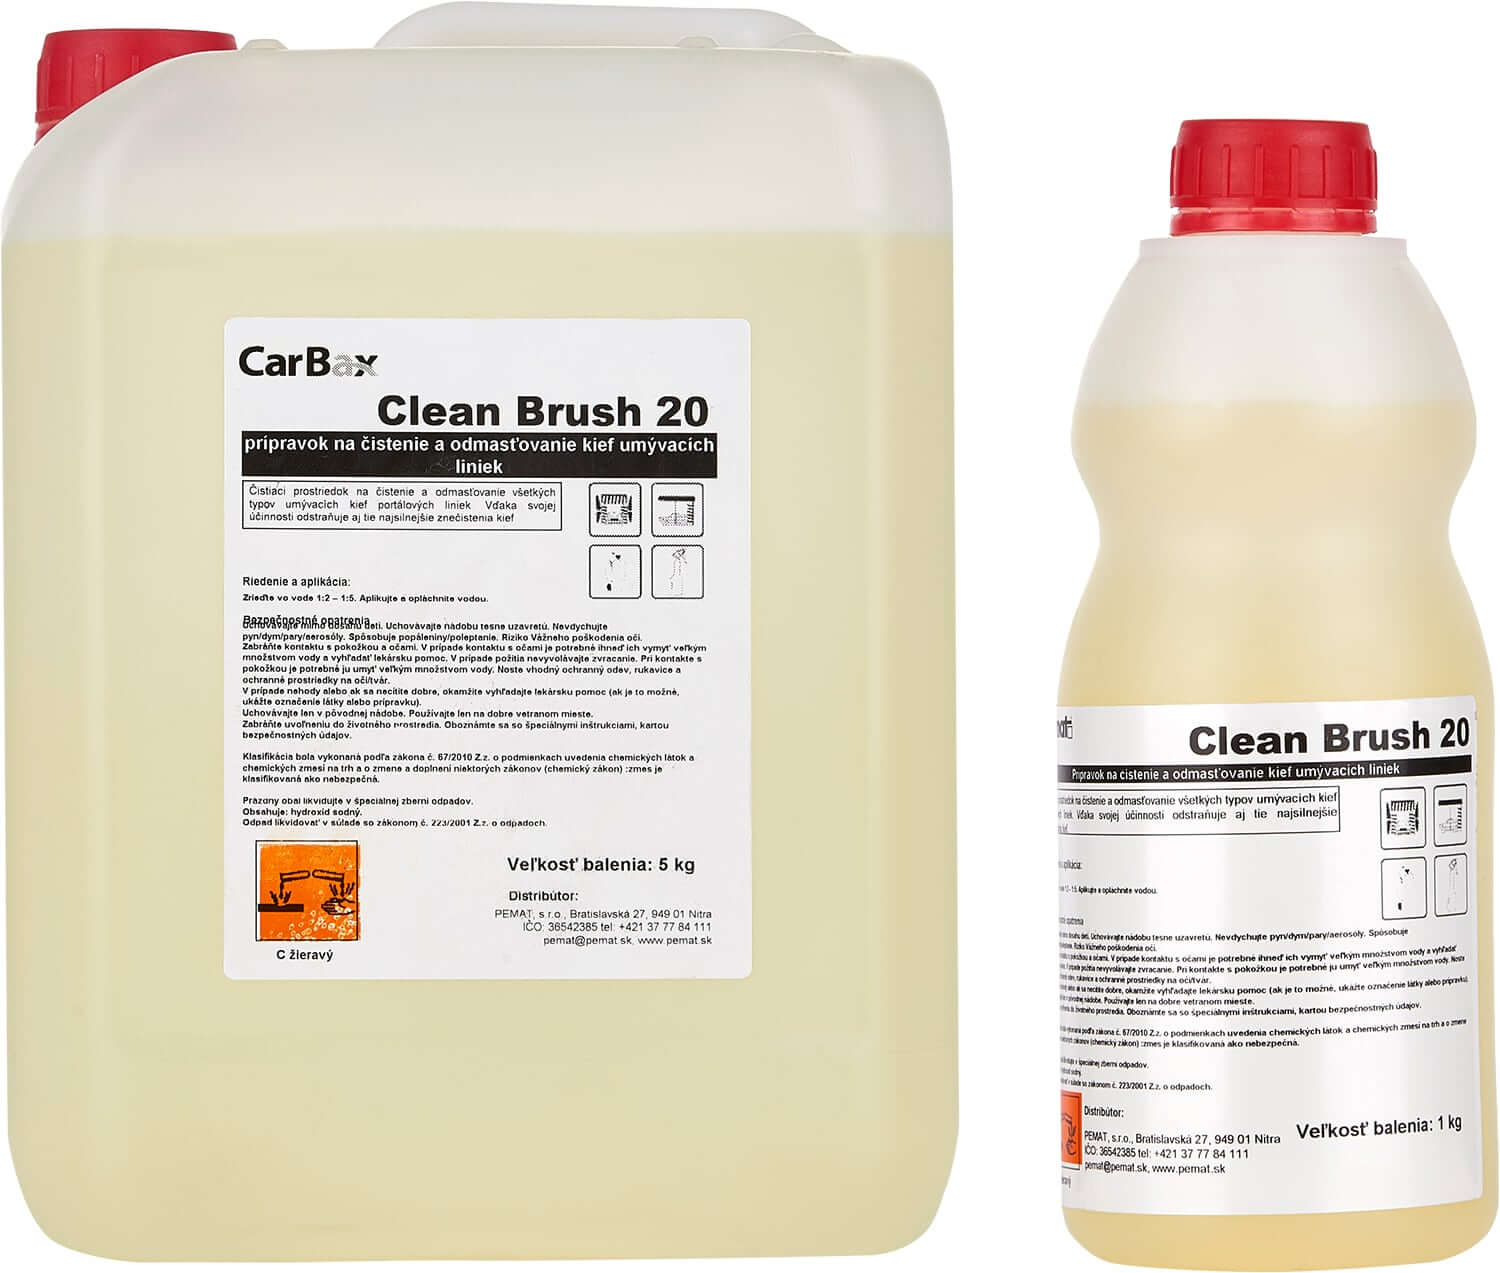 Clean Brush 20